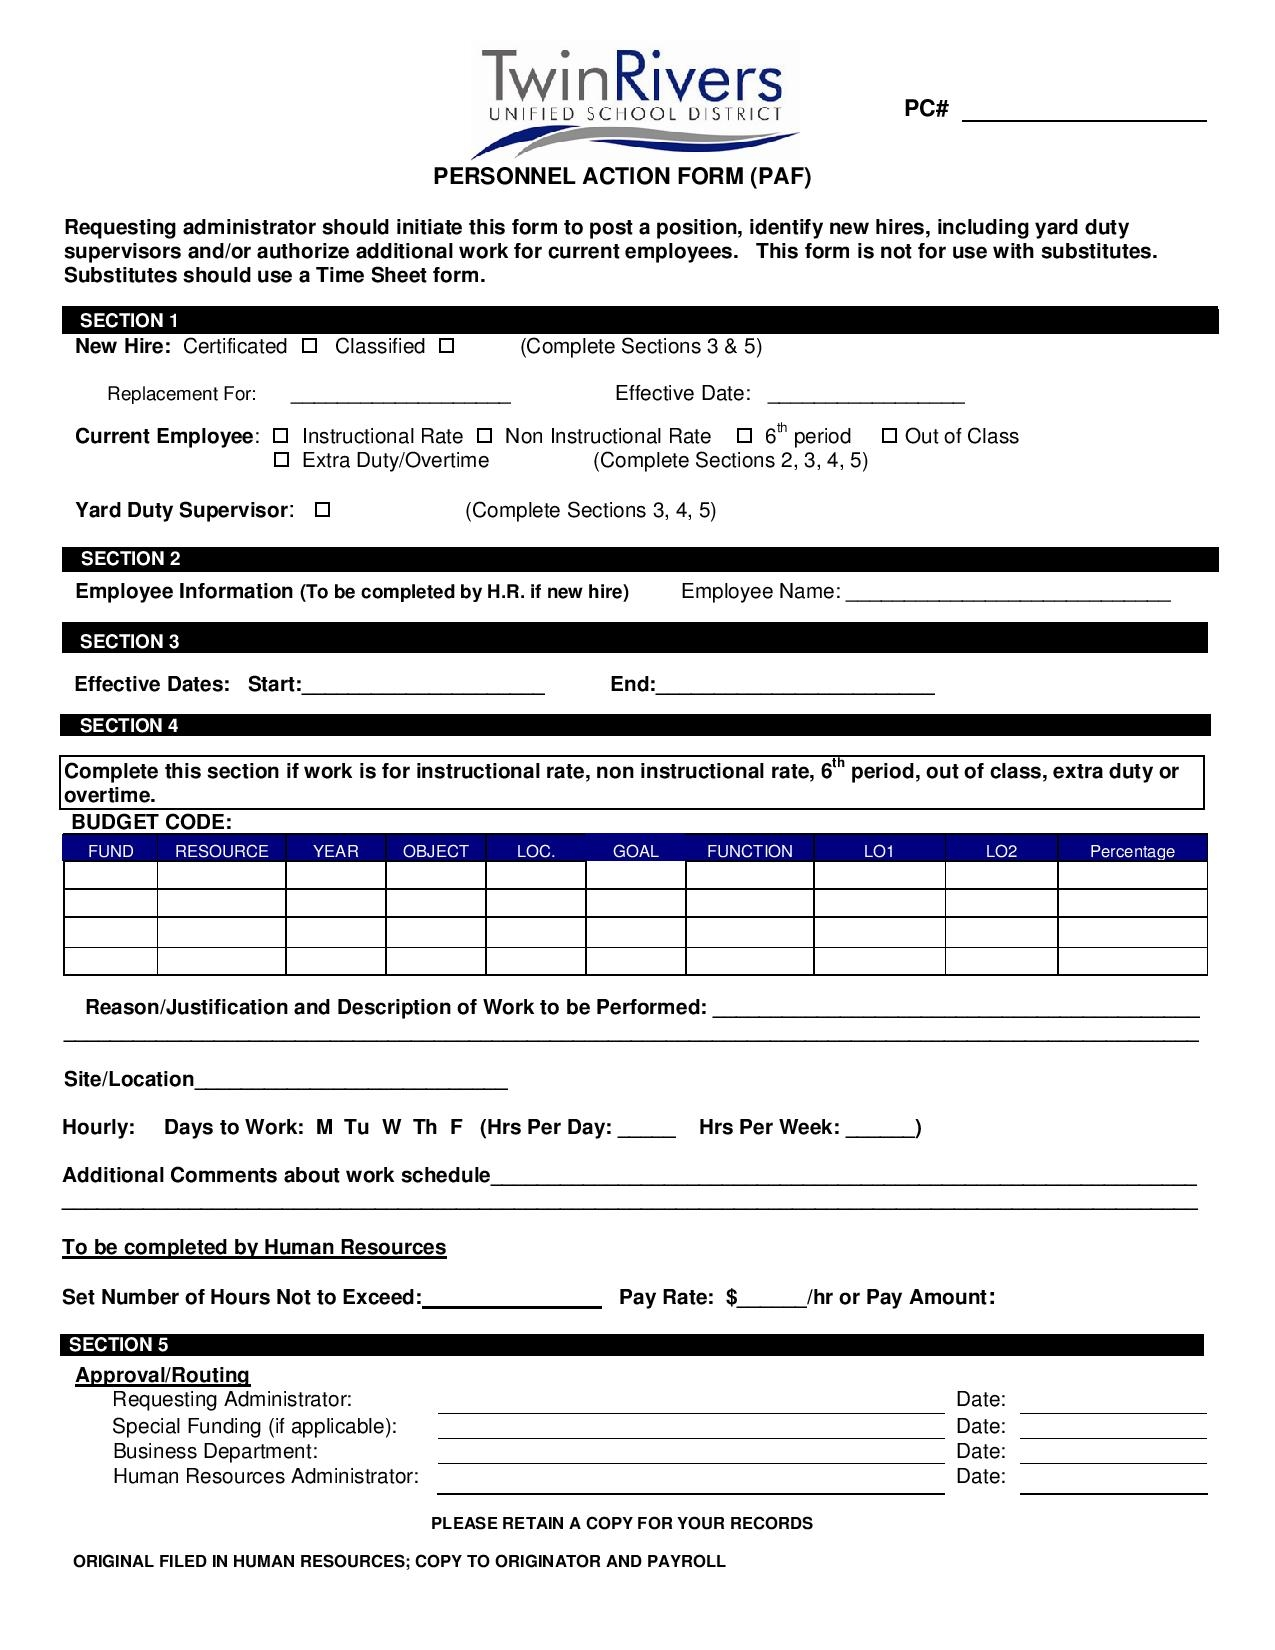 hr personnel action form in pdf page 0012